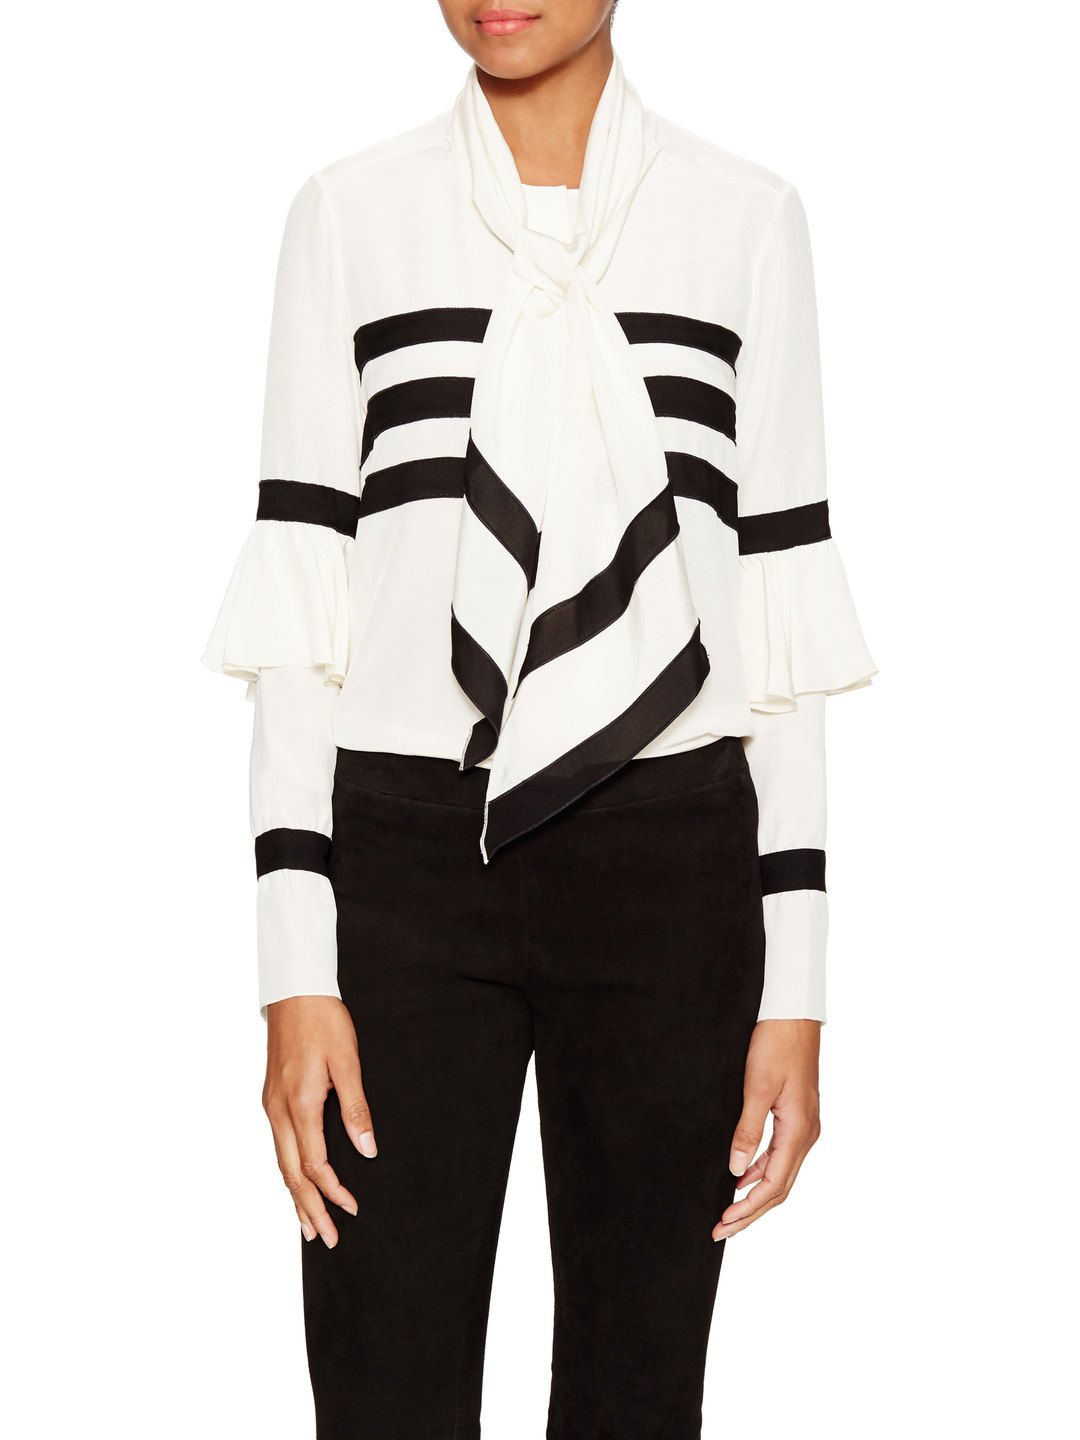 Neck Tie Striped Blouse by Issa at Gilt